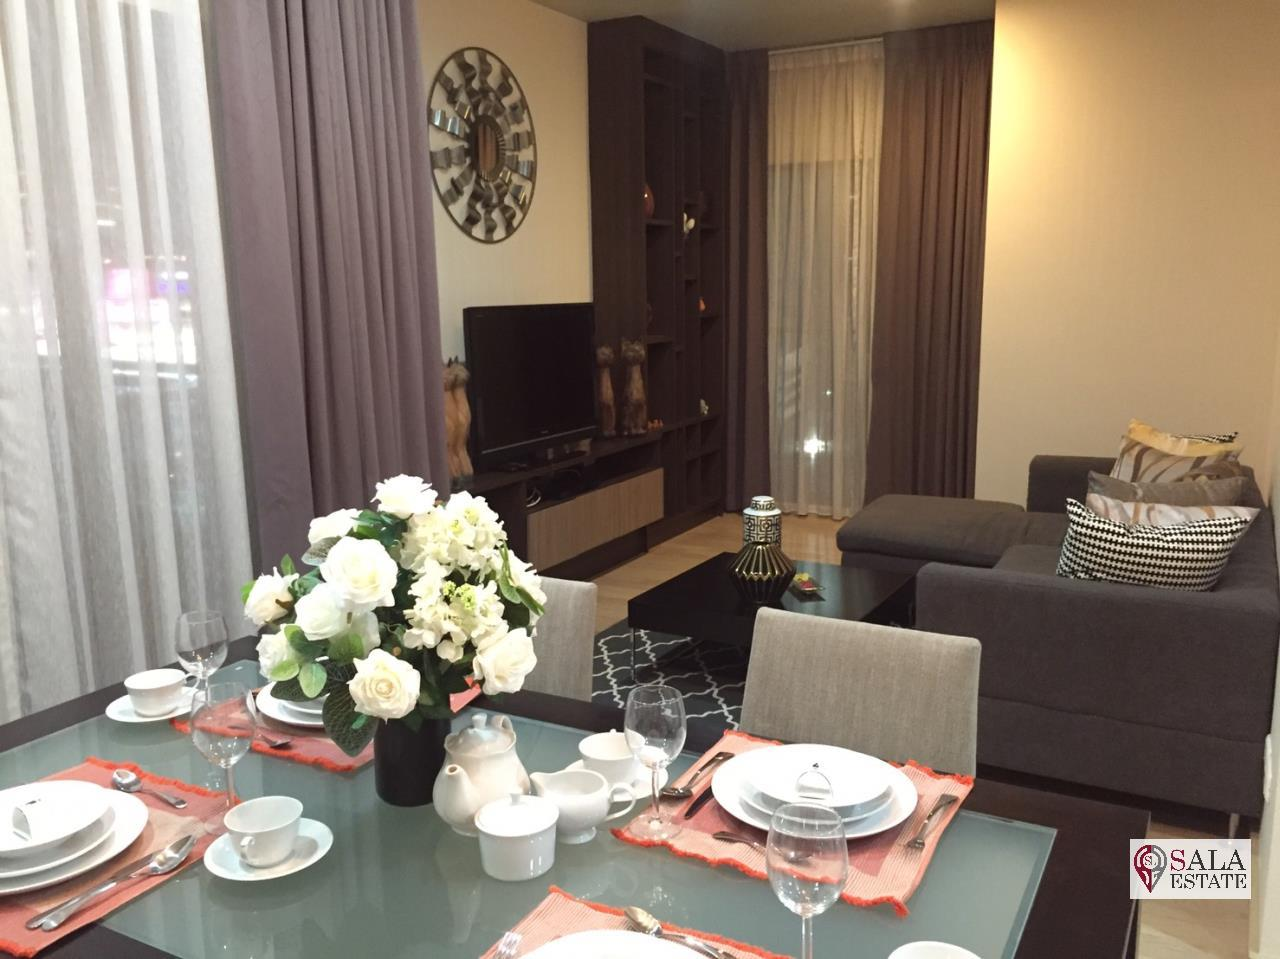 SALA ESTATE Agency's (FOR RENT/SALE) NOBLE REFINE – BTS PHROM PHONG, 2 BEDROOMS 2 BATHROOMS, FULLY FURNISHED 3